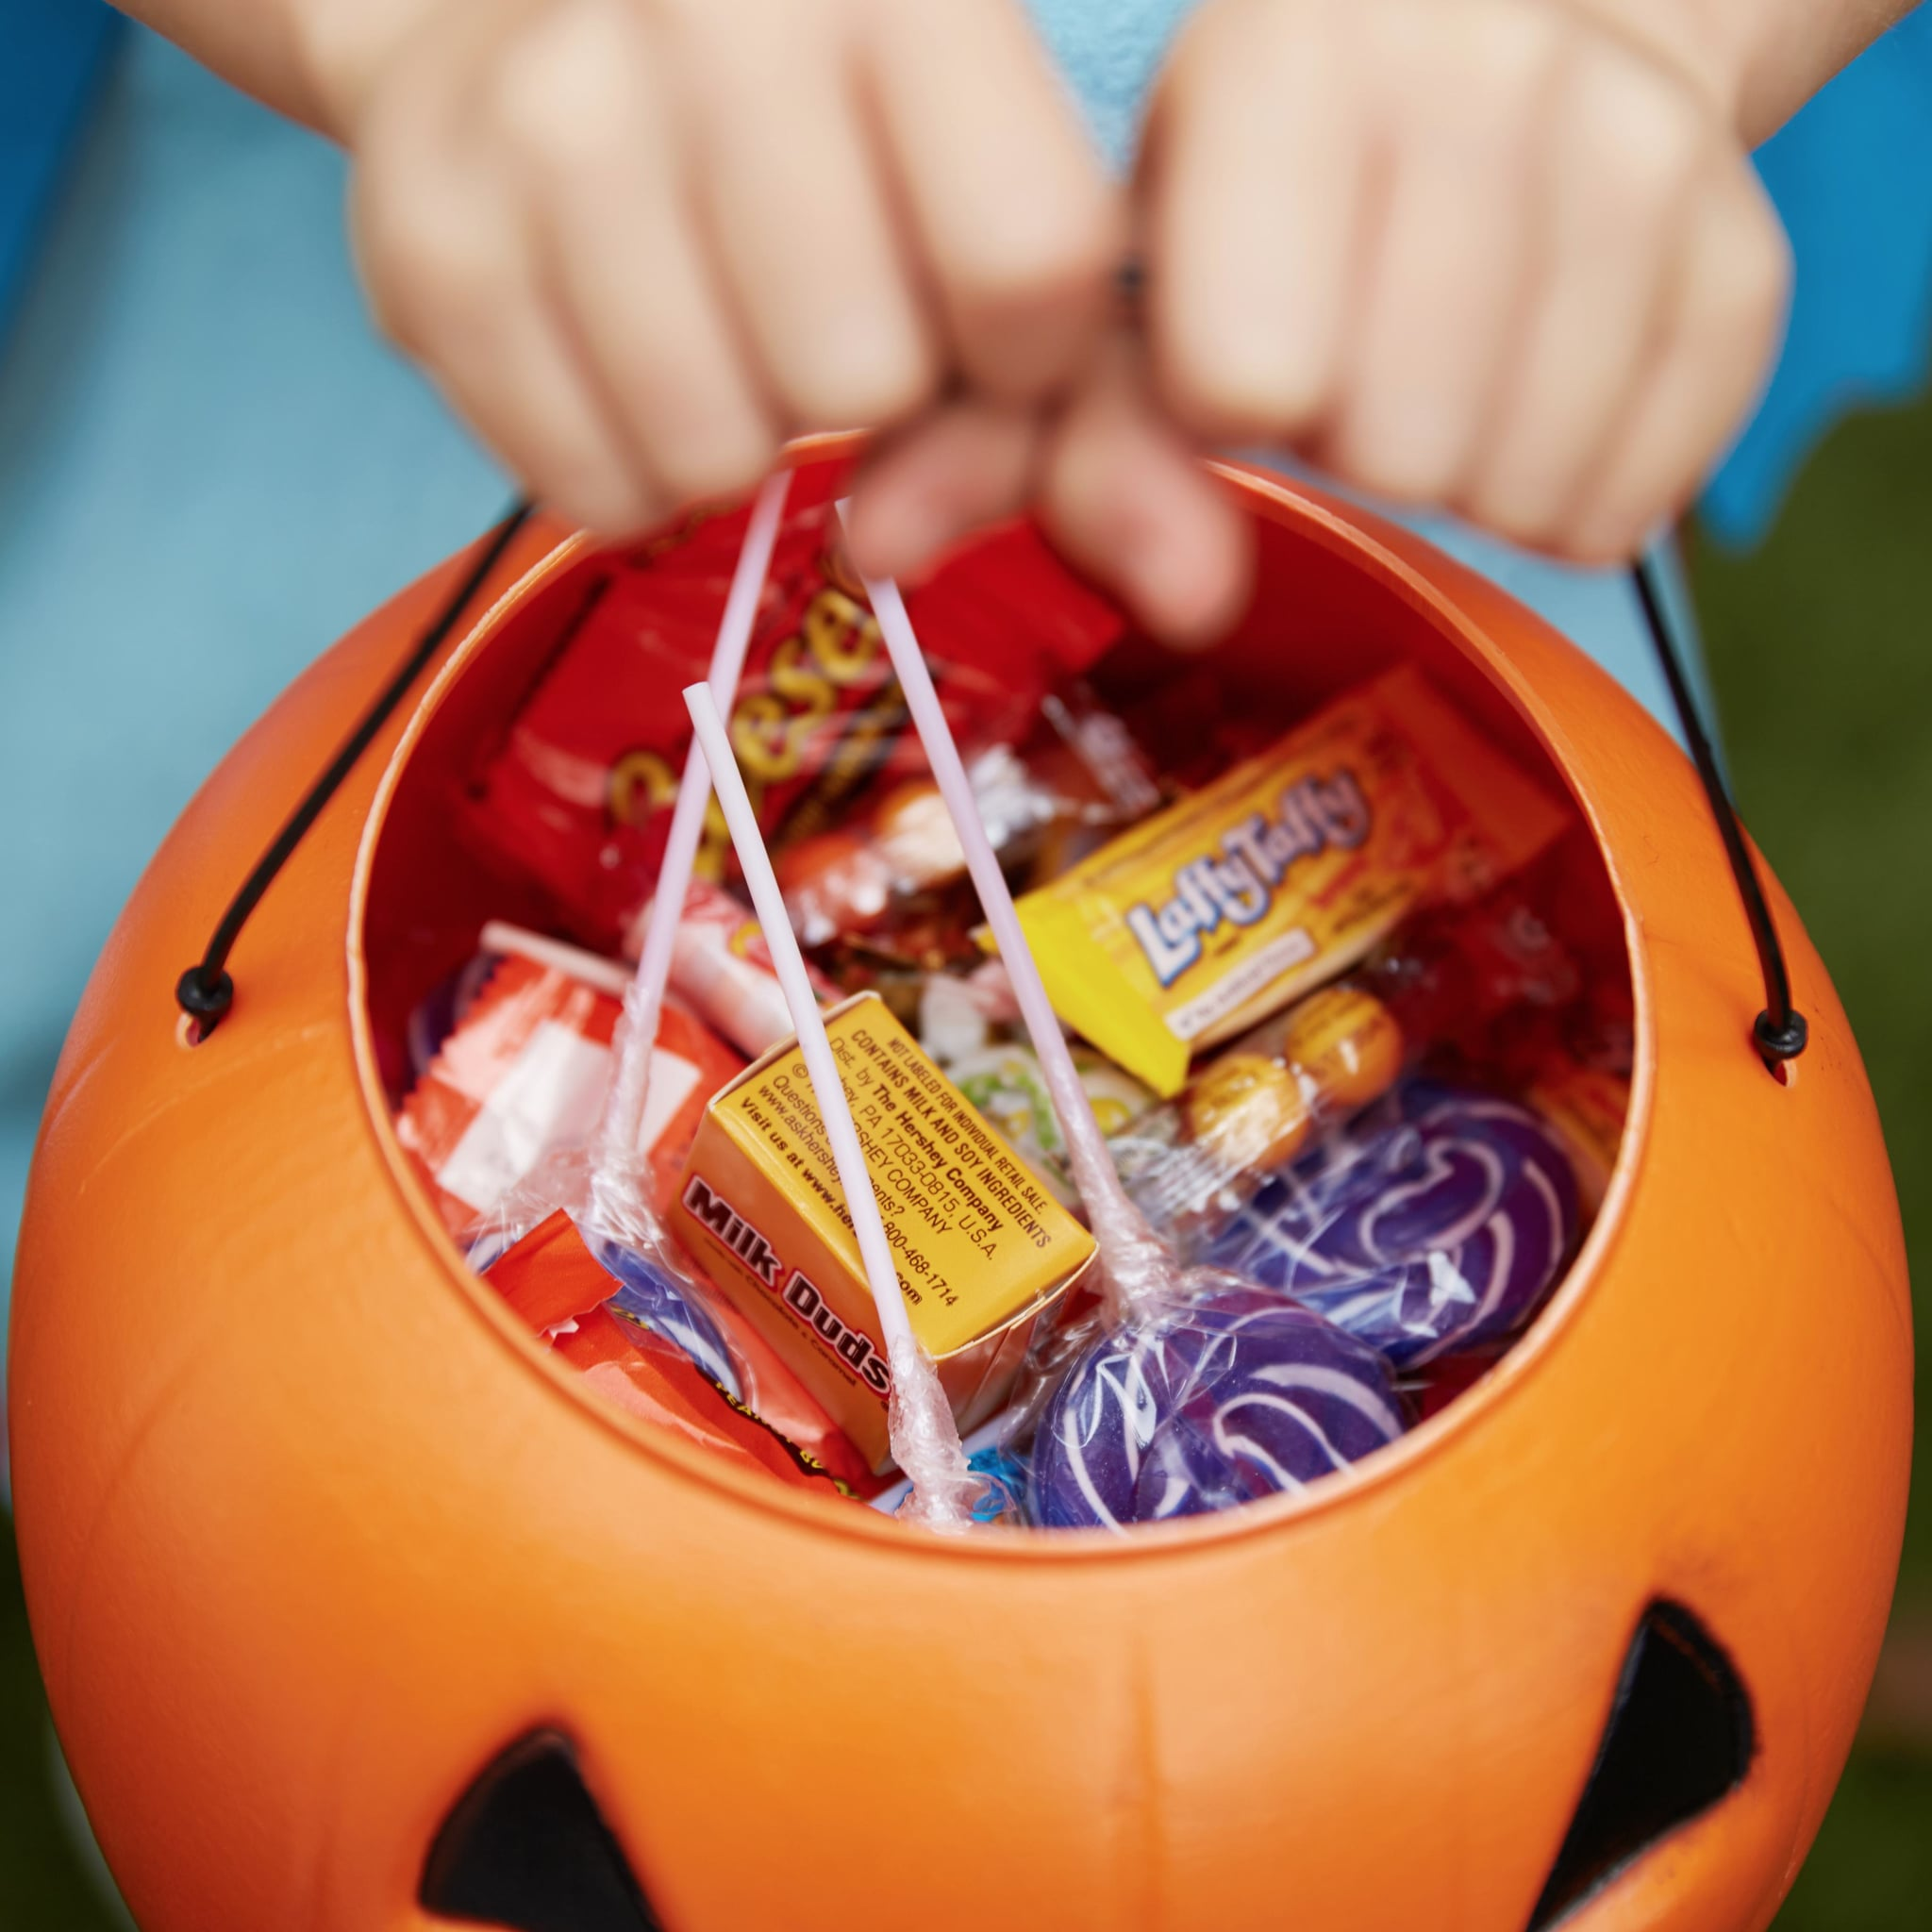 checking halloween candy for tampering | popsugar family